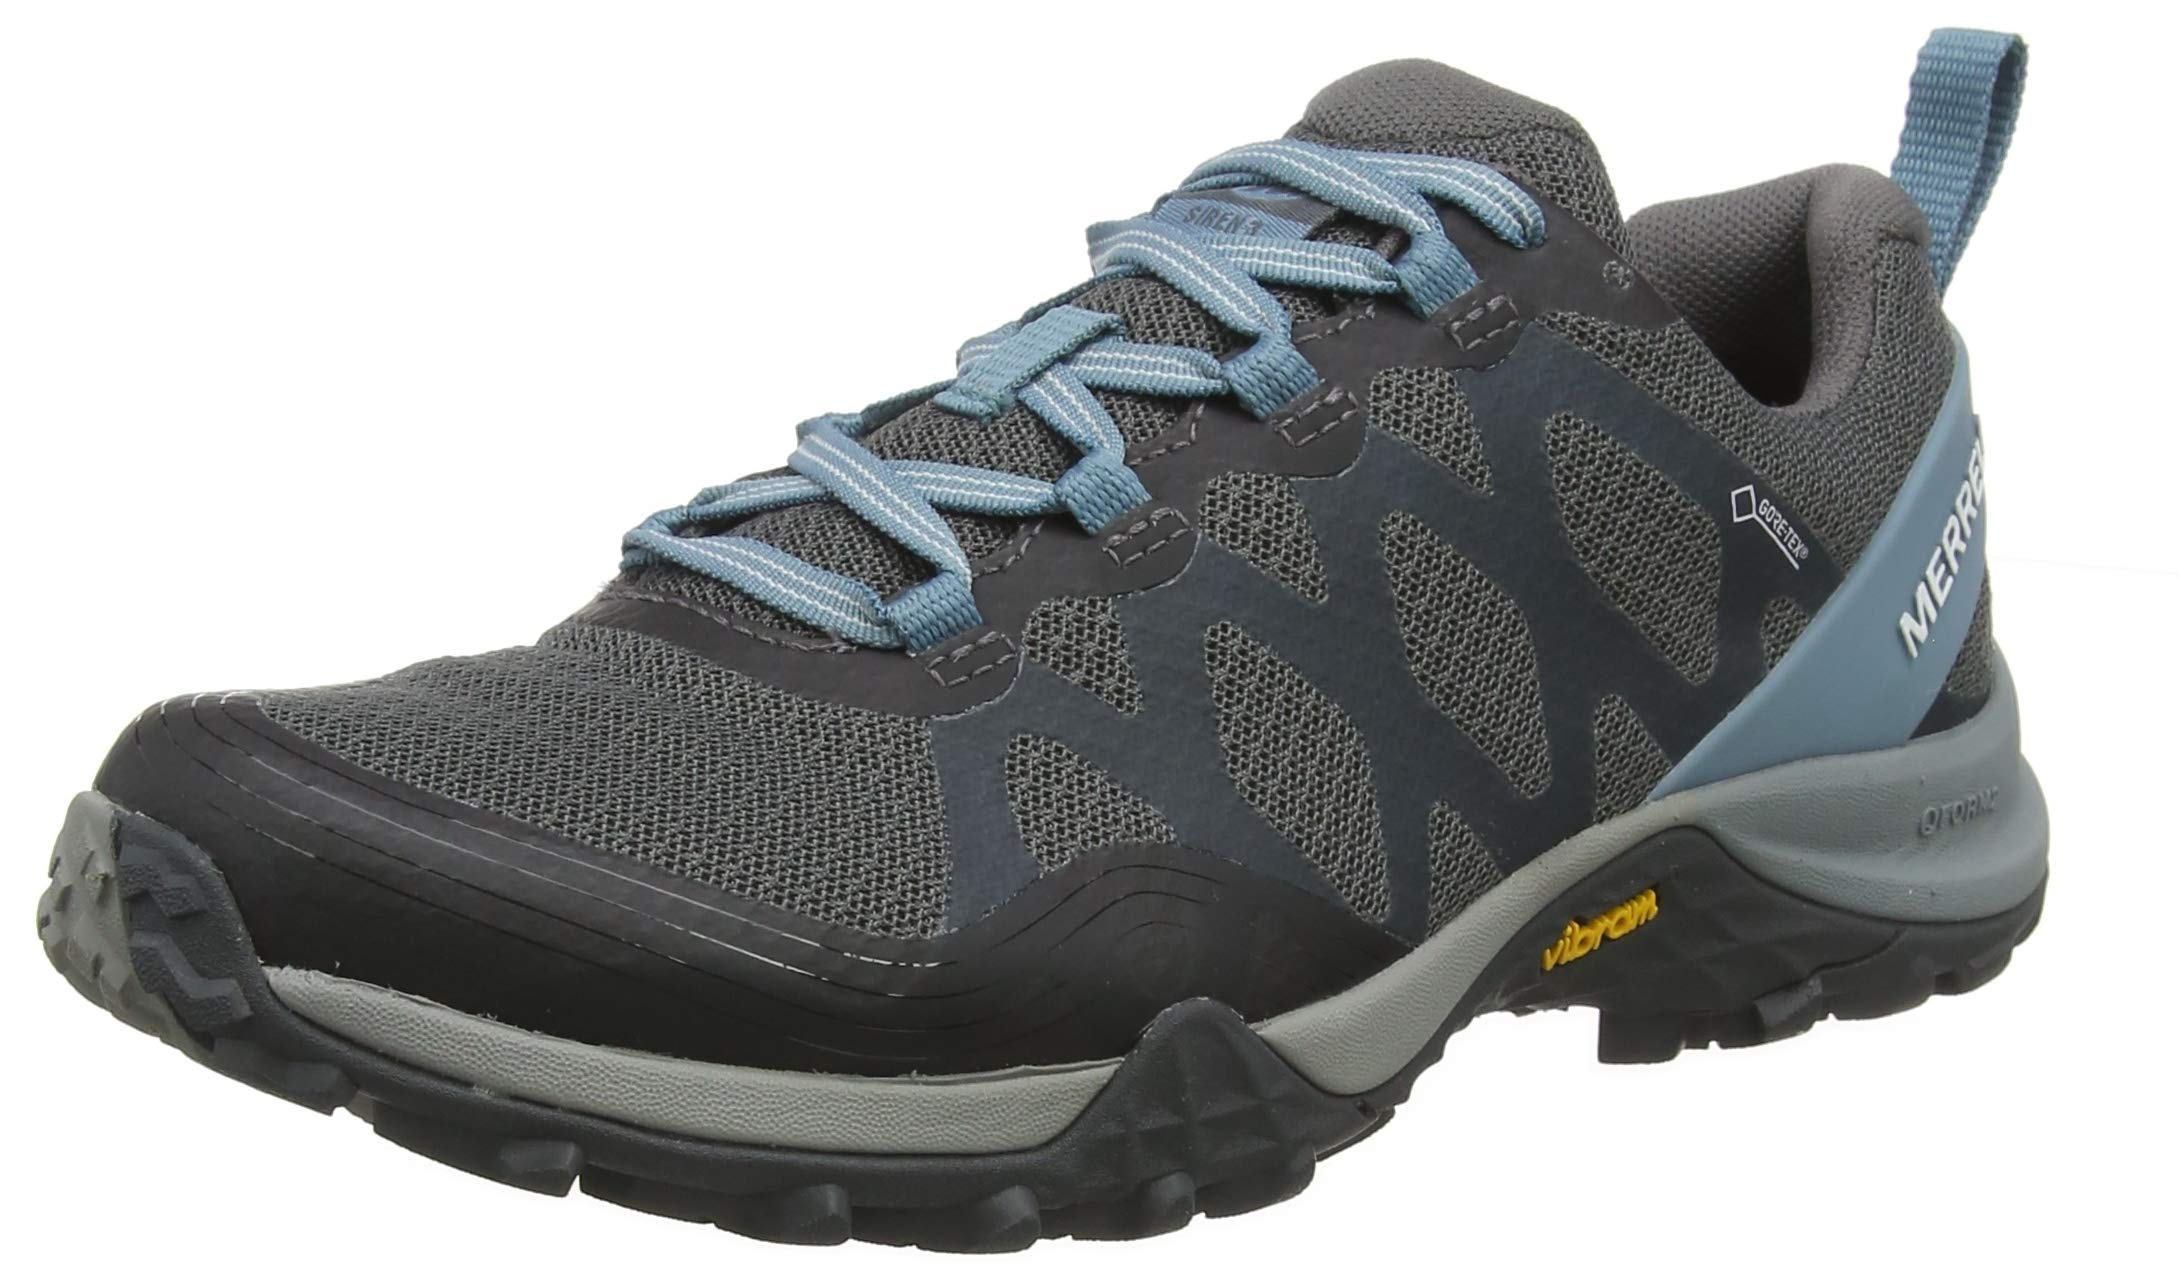 Merrell Women's Siren 3 Gore-tex Low Rise Hiking Boots 1